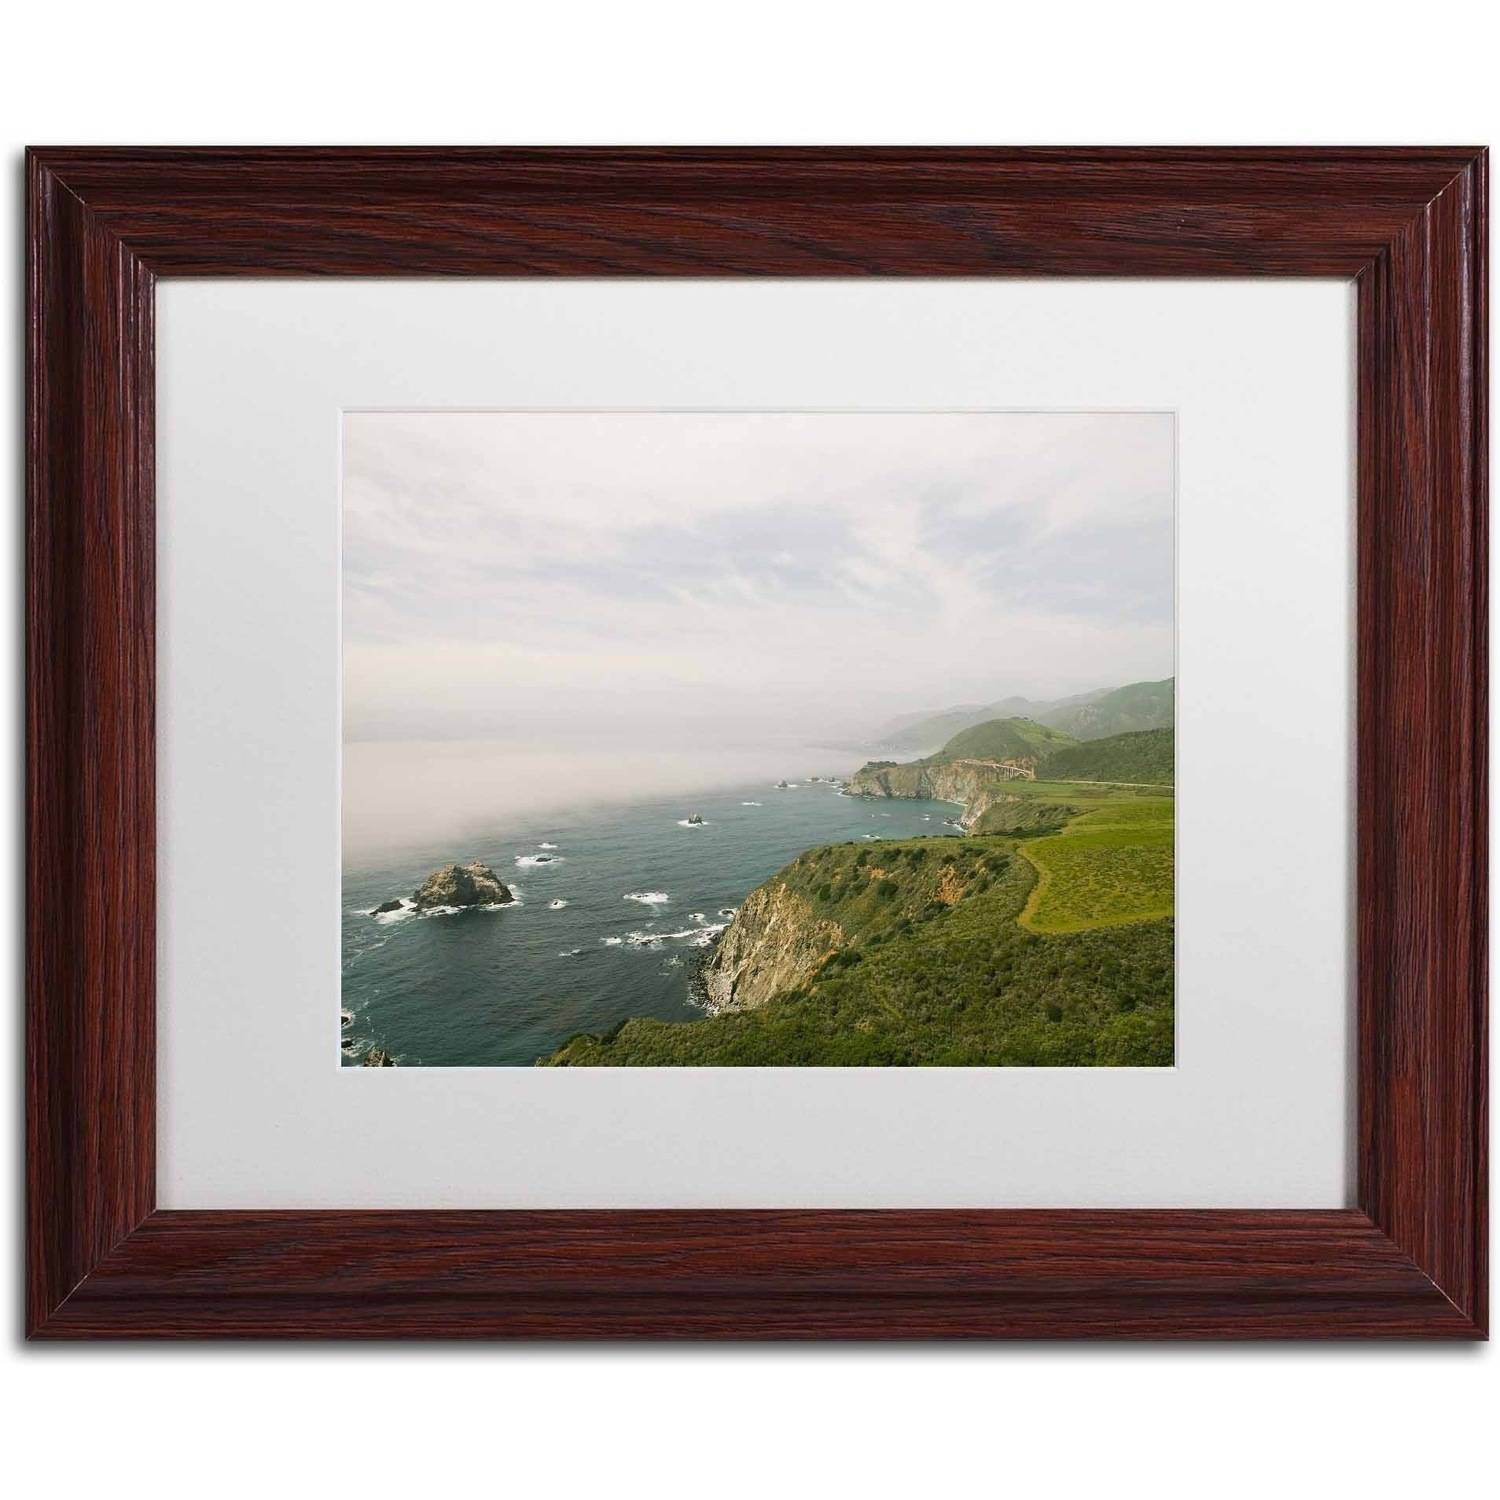 Trademark Fine Art 'Big Sur Coastal Daytime' Canvas Art by Ariane Moshayedi, White Matte, Wood Frame